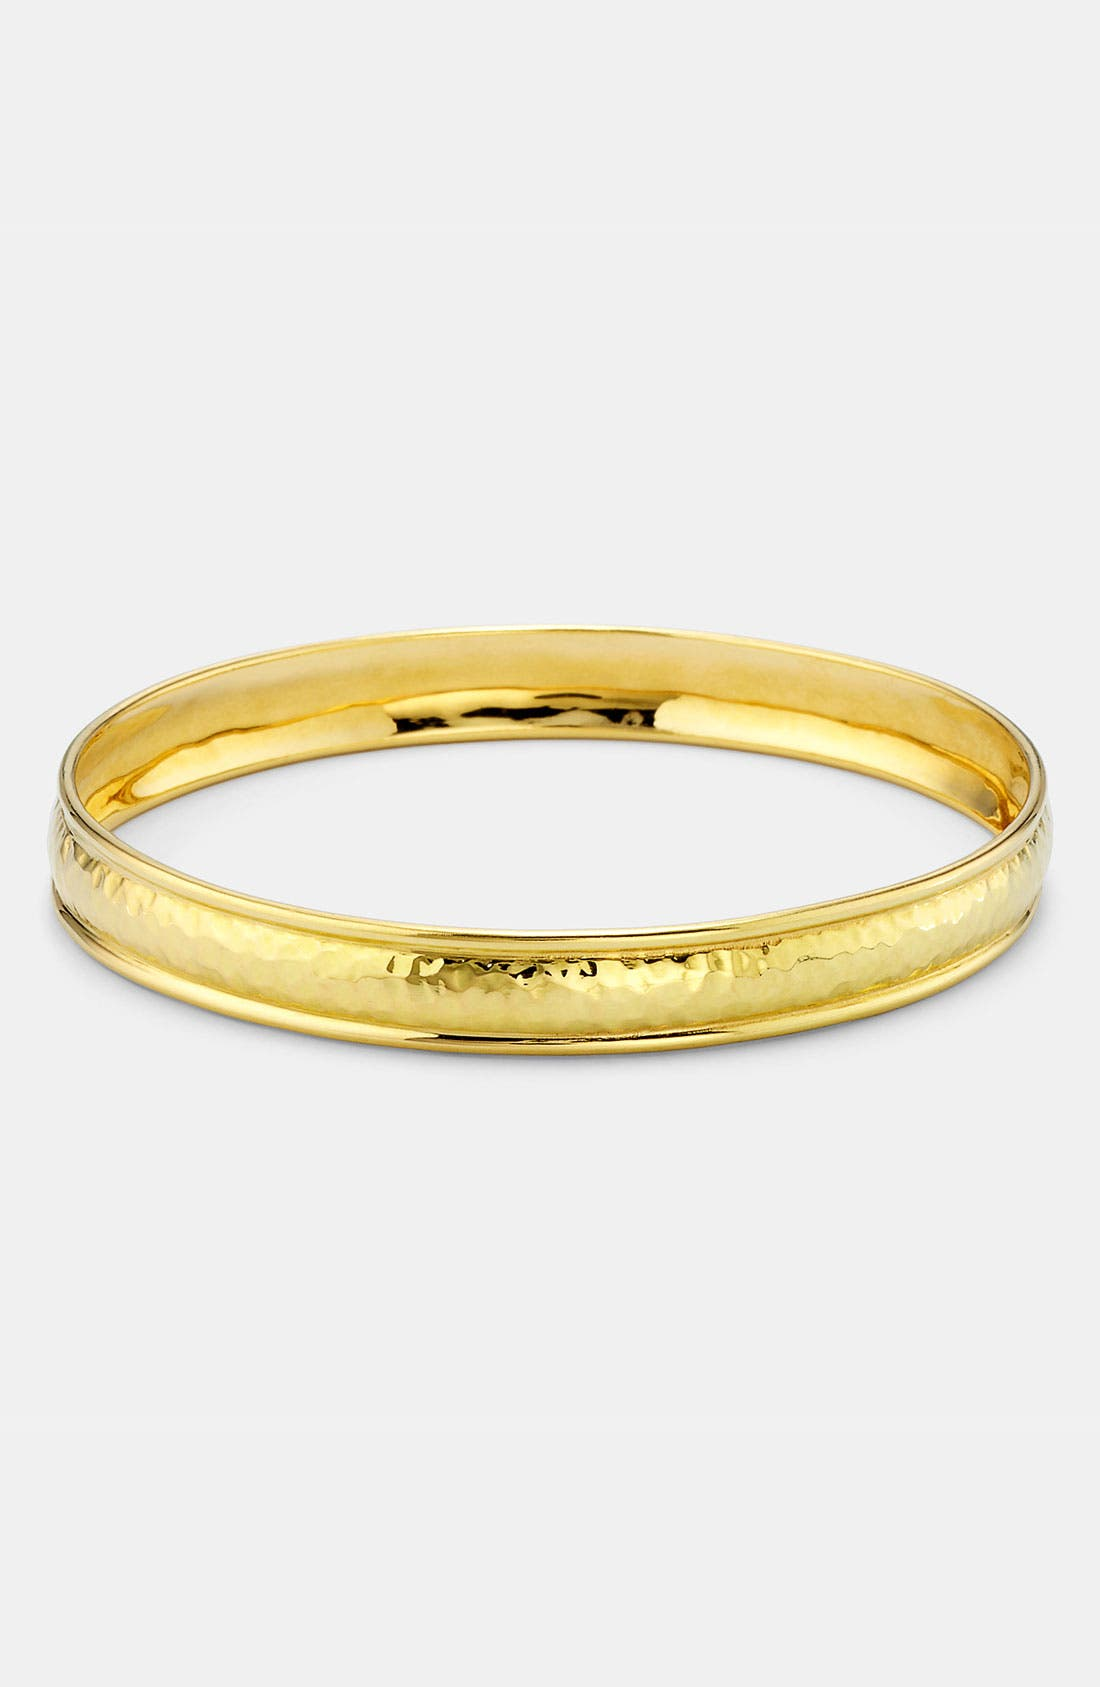 Alternate Image 1 Selected - Ippolita 'Crinkle' Skinny Hammered 18k Gold Bangle